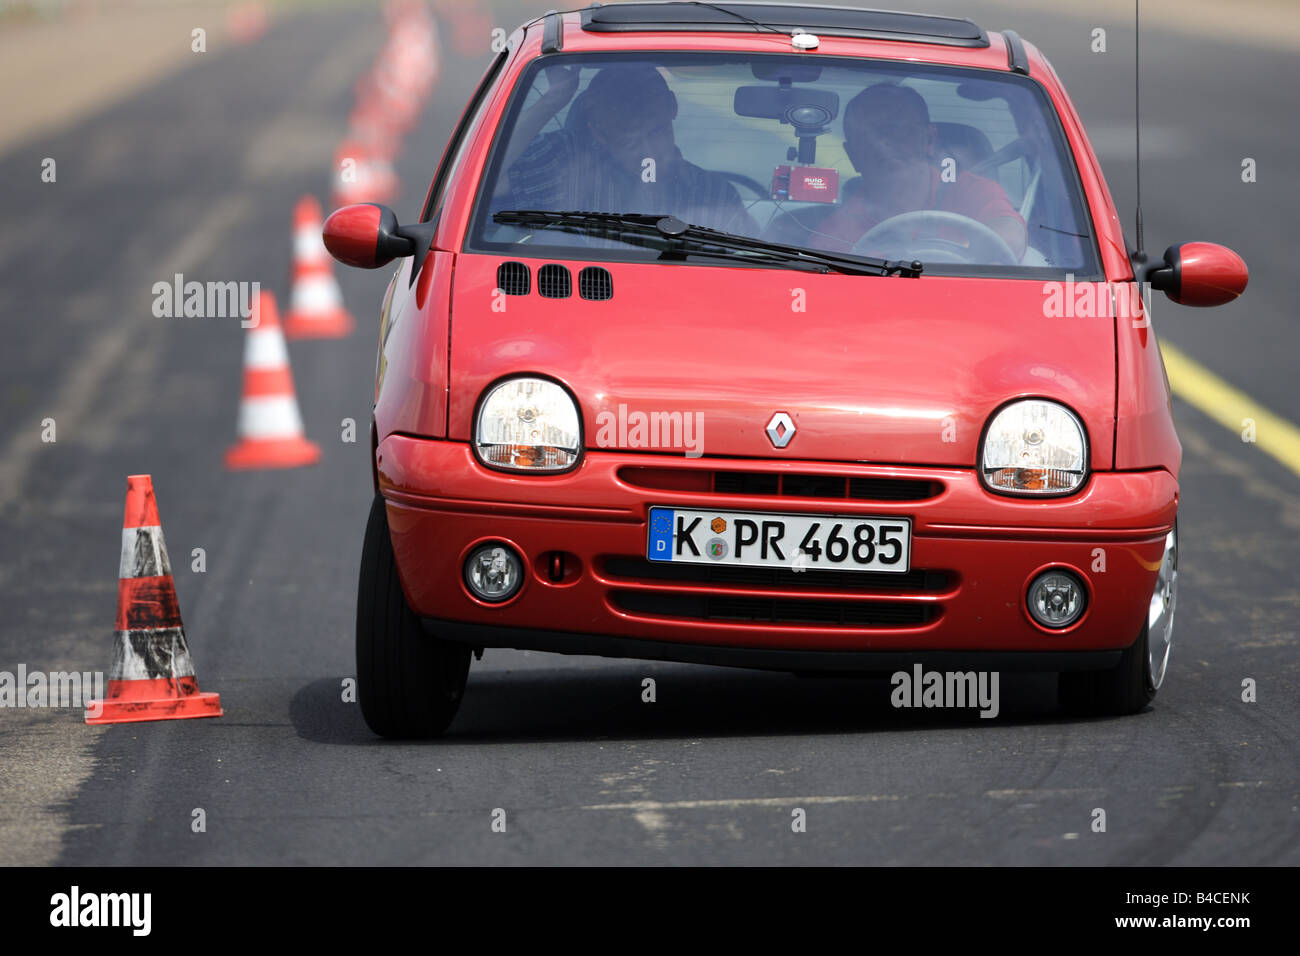 car renault twingo 1 2 dynamique red model year 2000 driving stock photo royalty free. Black Bedroom Furniture Sets. Home Design Ideas